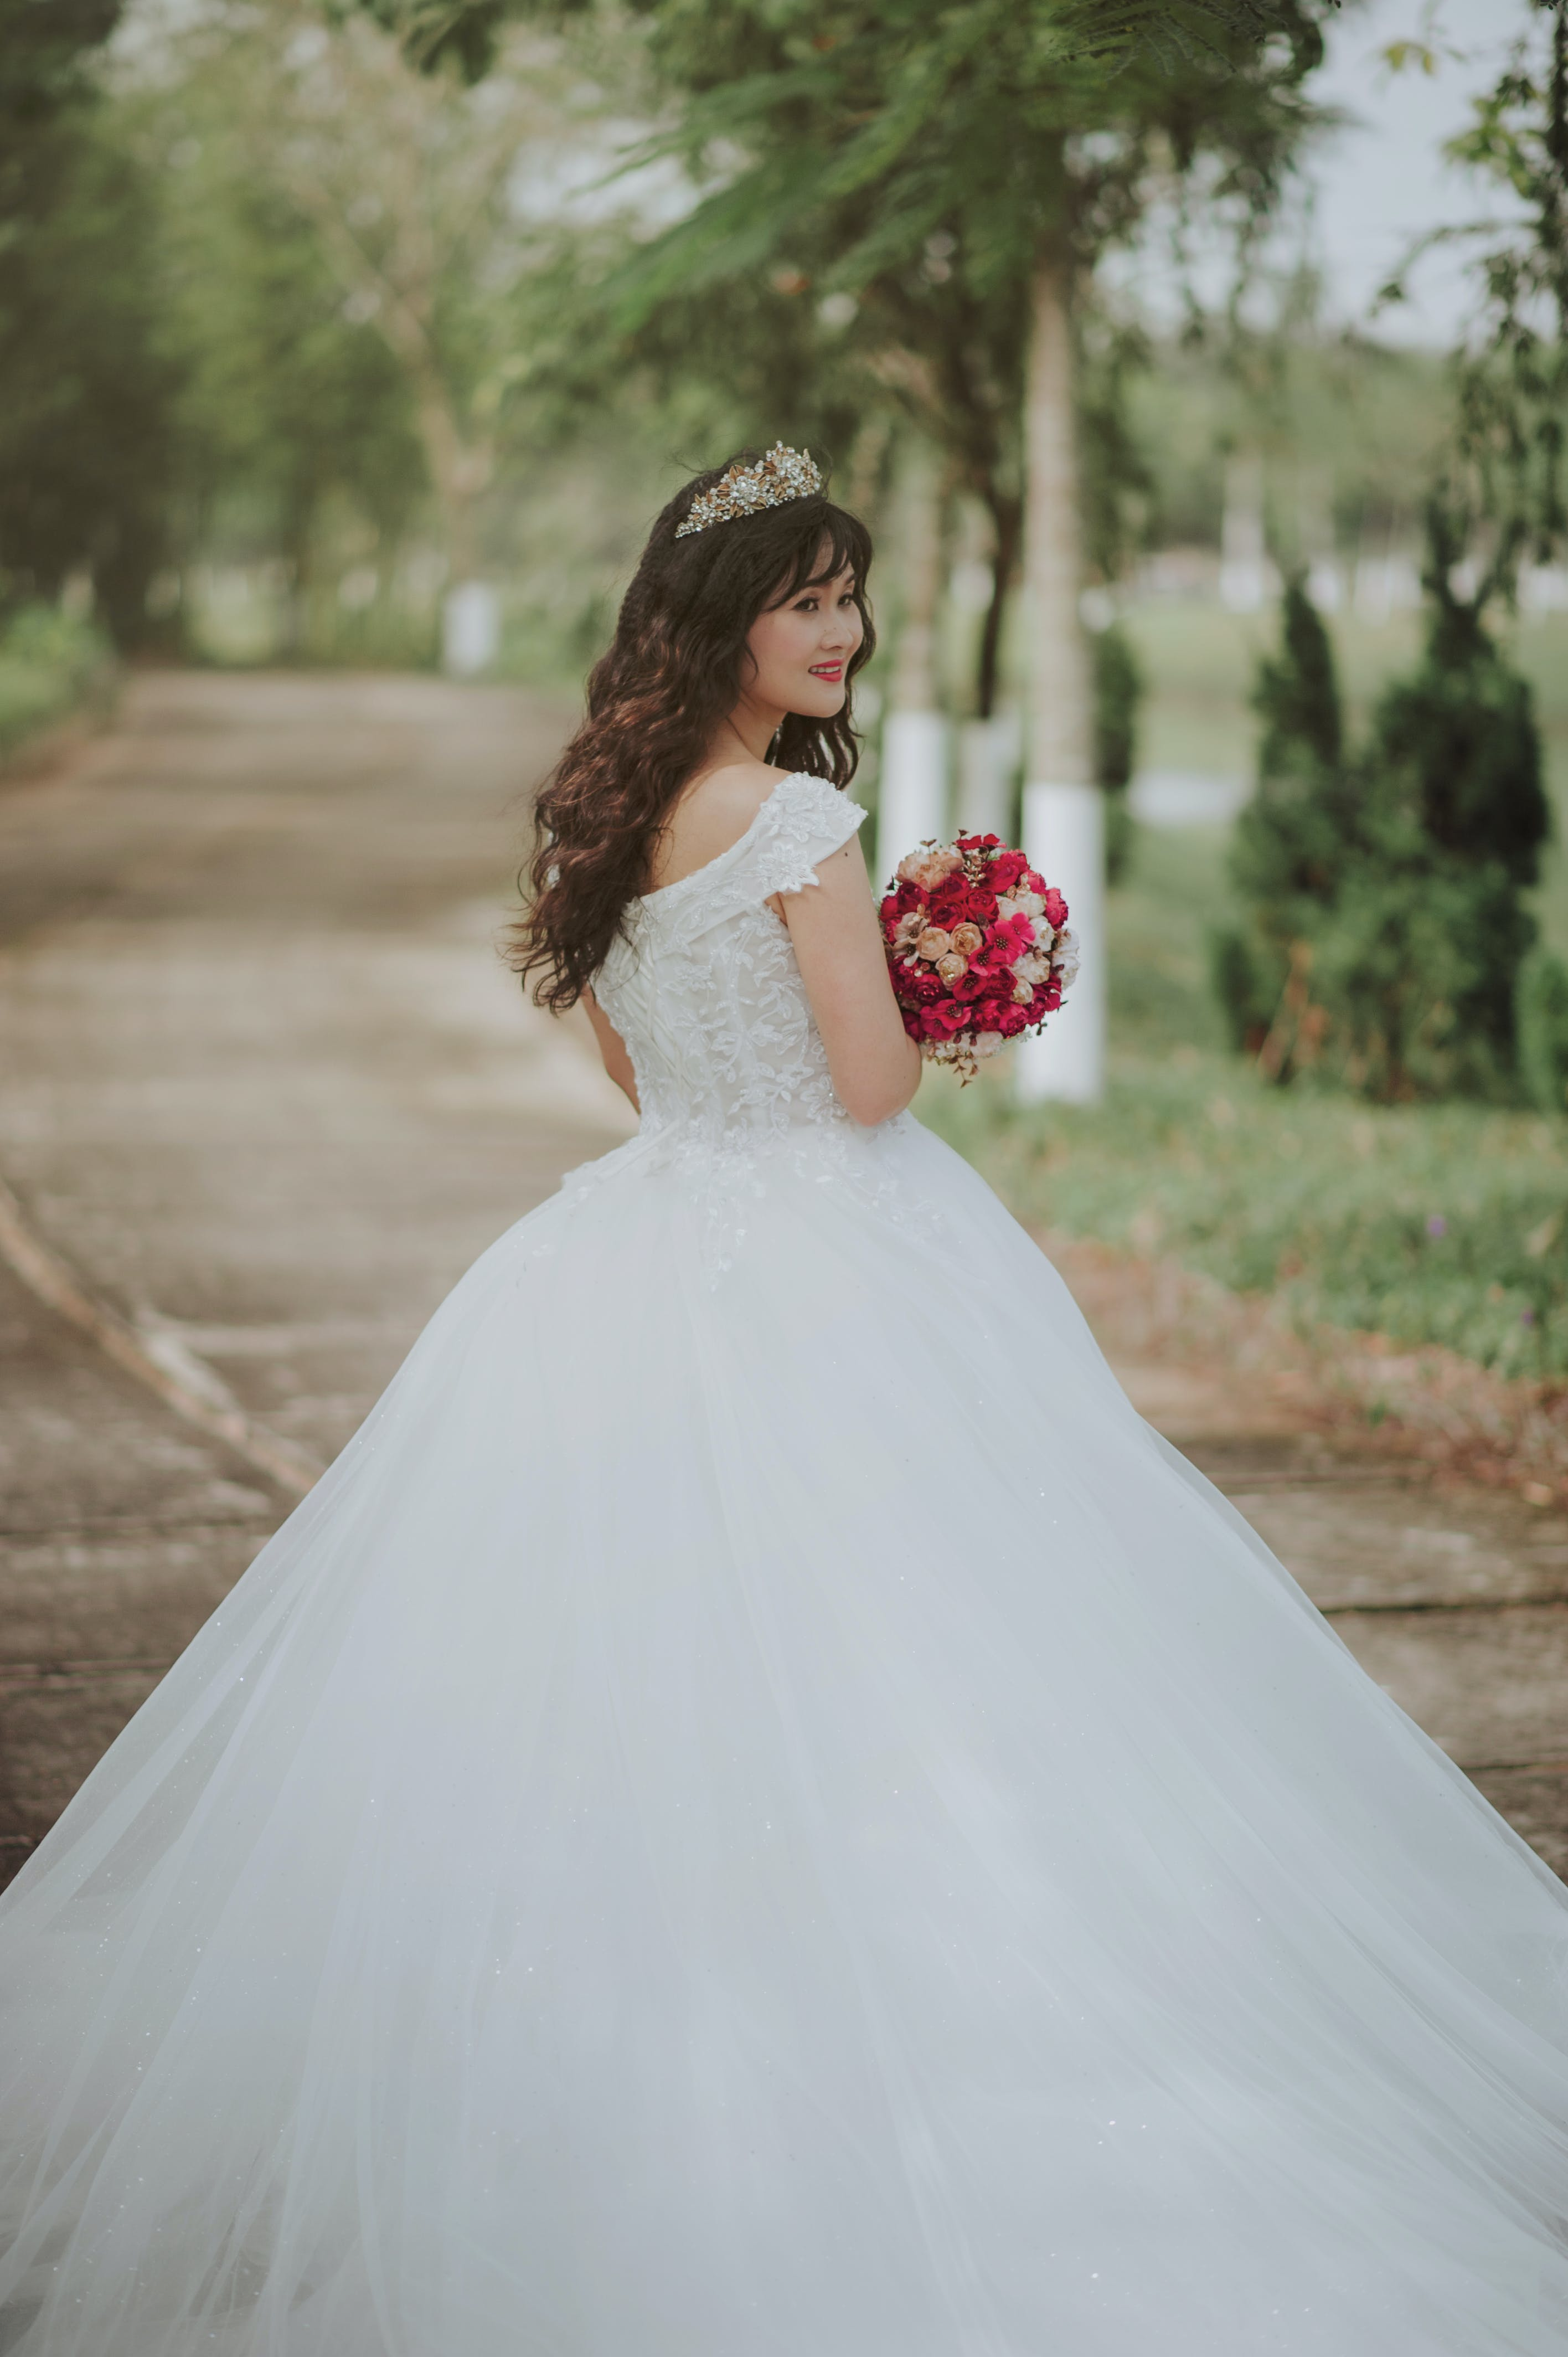 Photo of a Woman in Her Wedding Dress